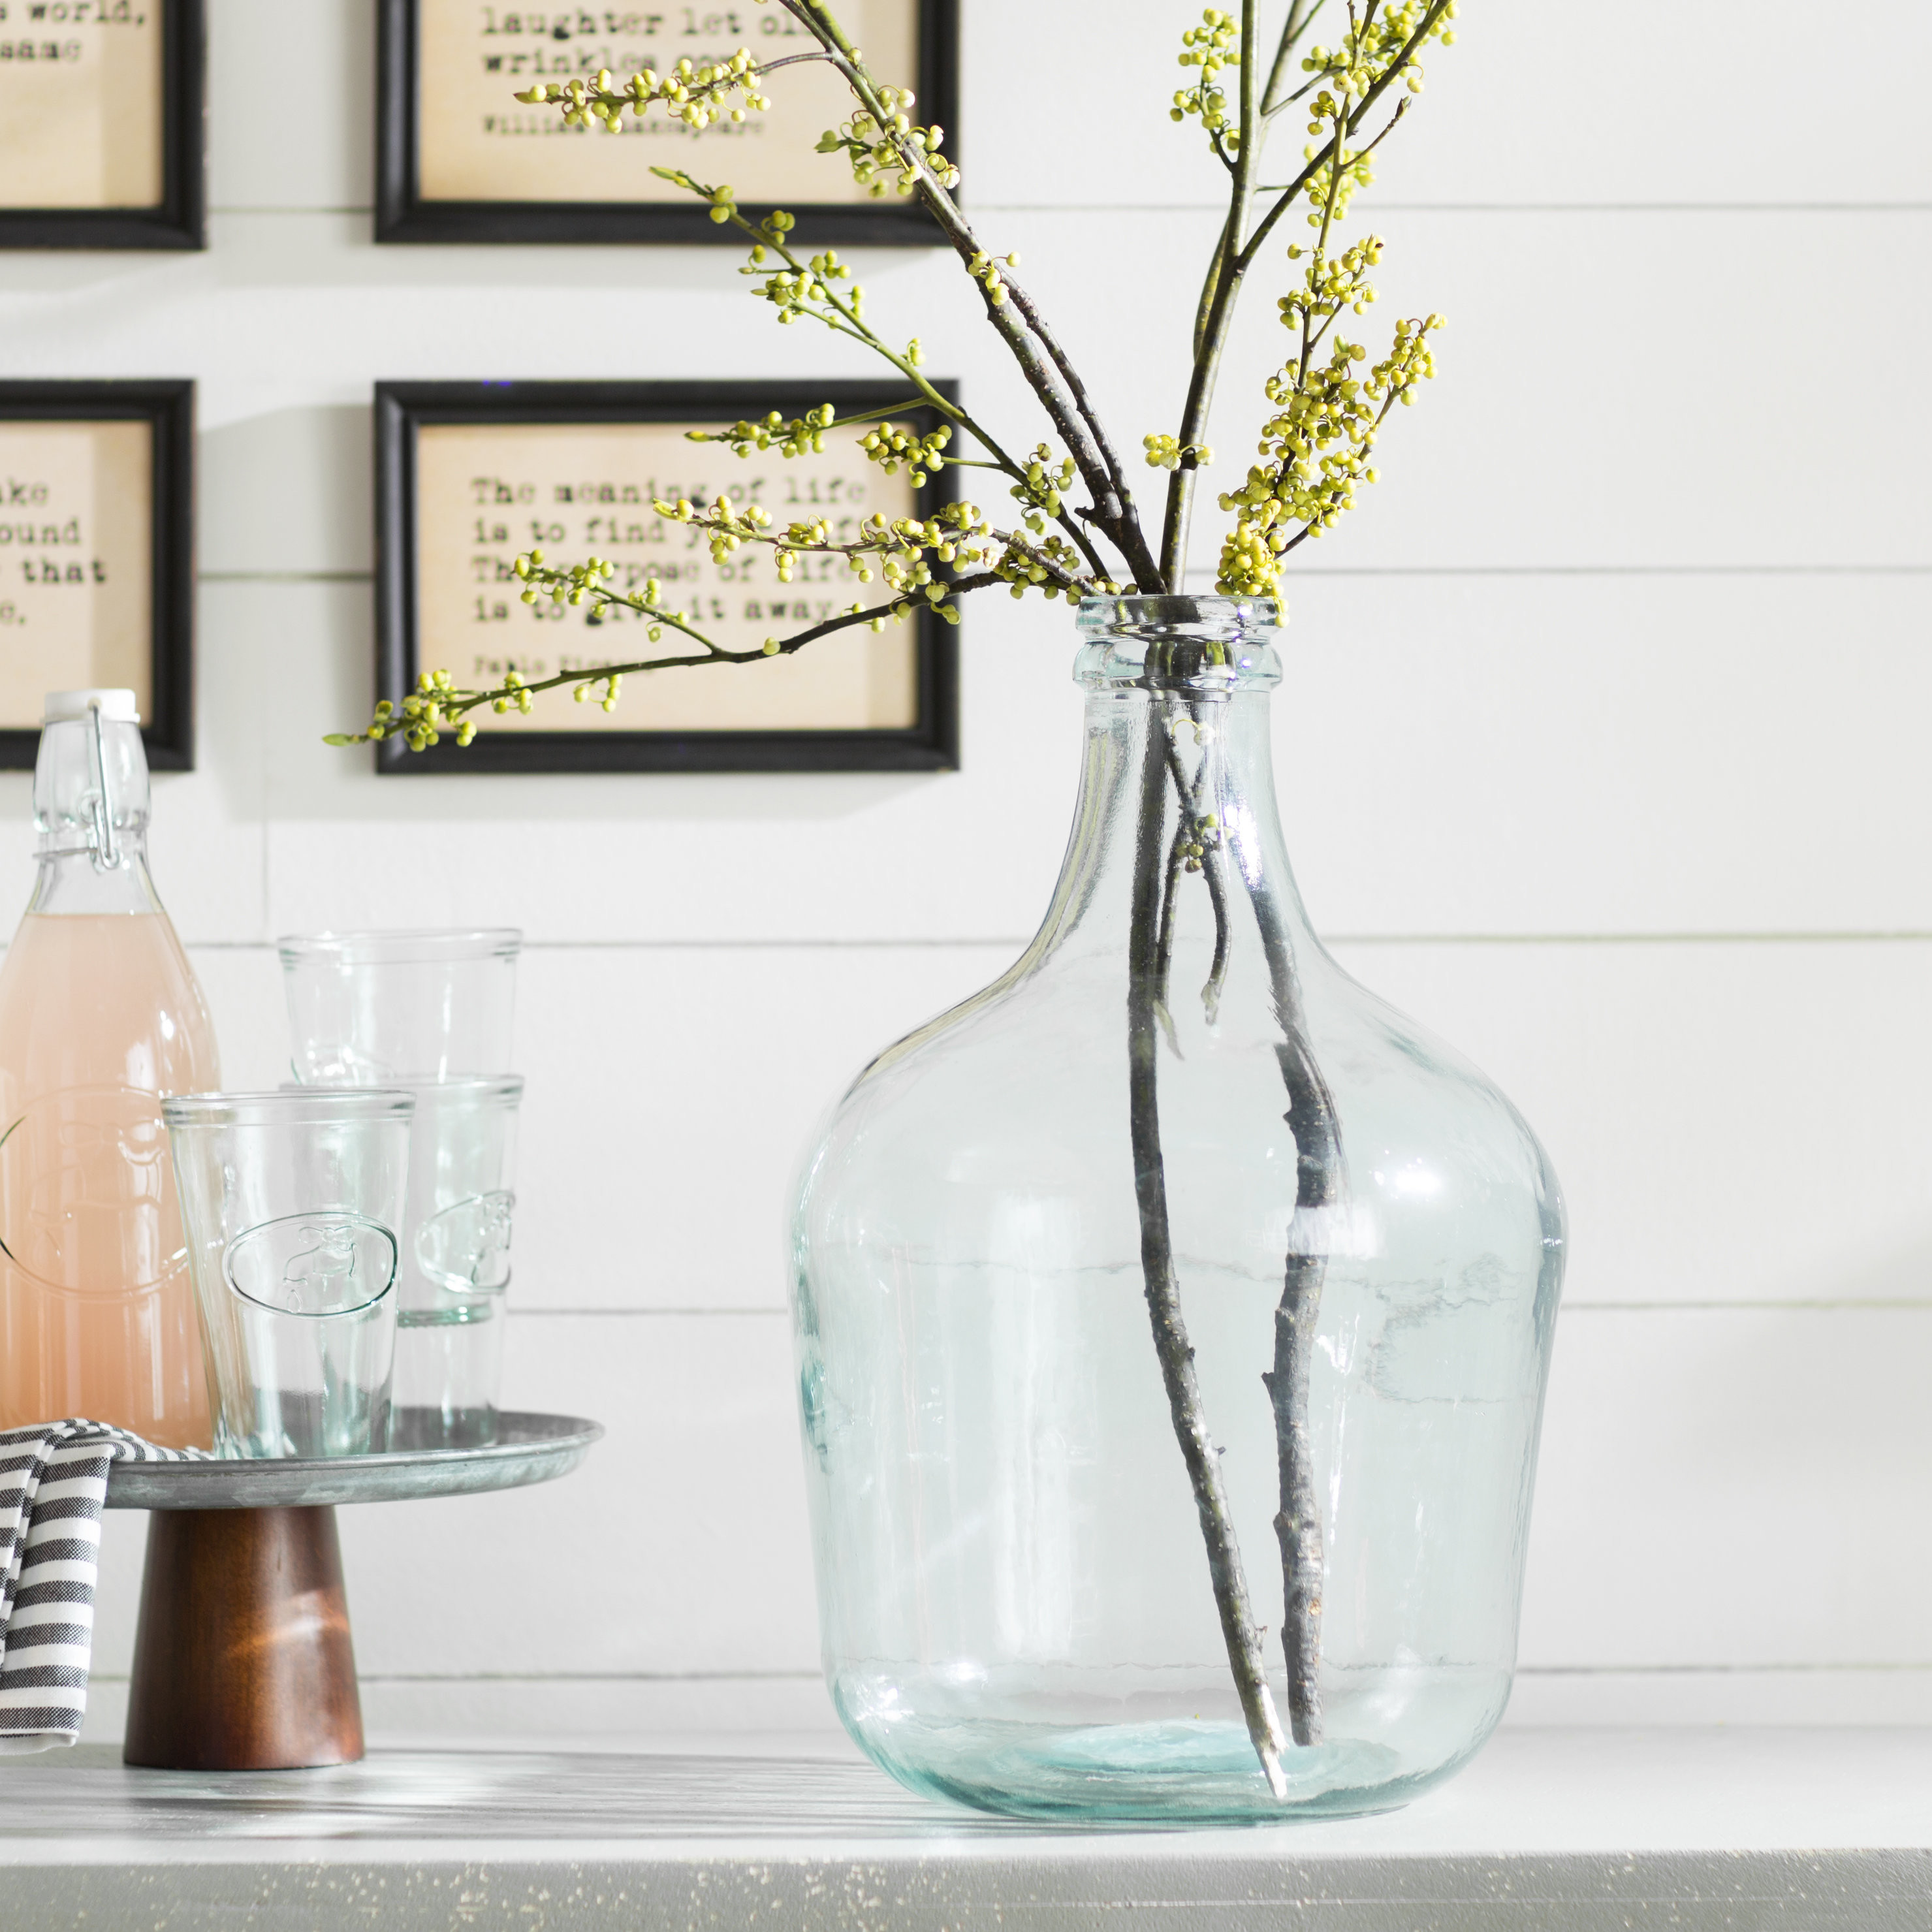 ribbed mercury glass vase of laurel foundry modern farmhouse parisian bottle glass table vase in laurel foundry modern farmhouse parisian bottle glass table vase reviews wayfair ca